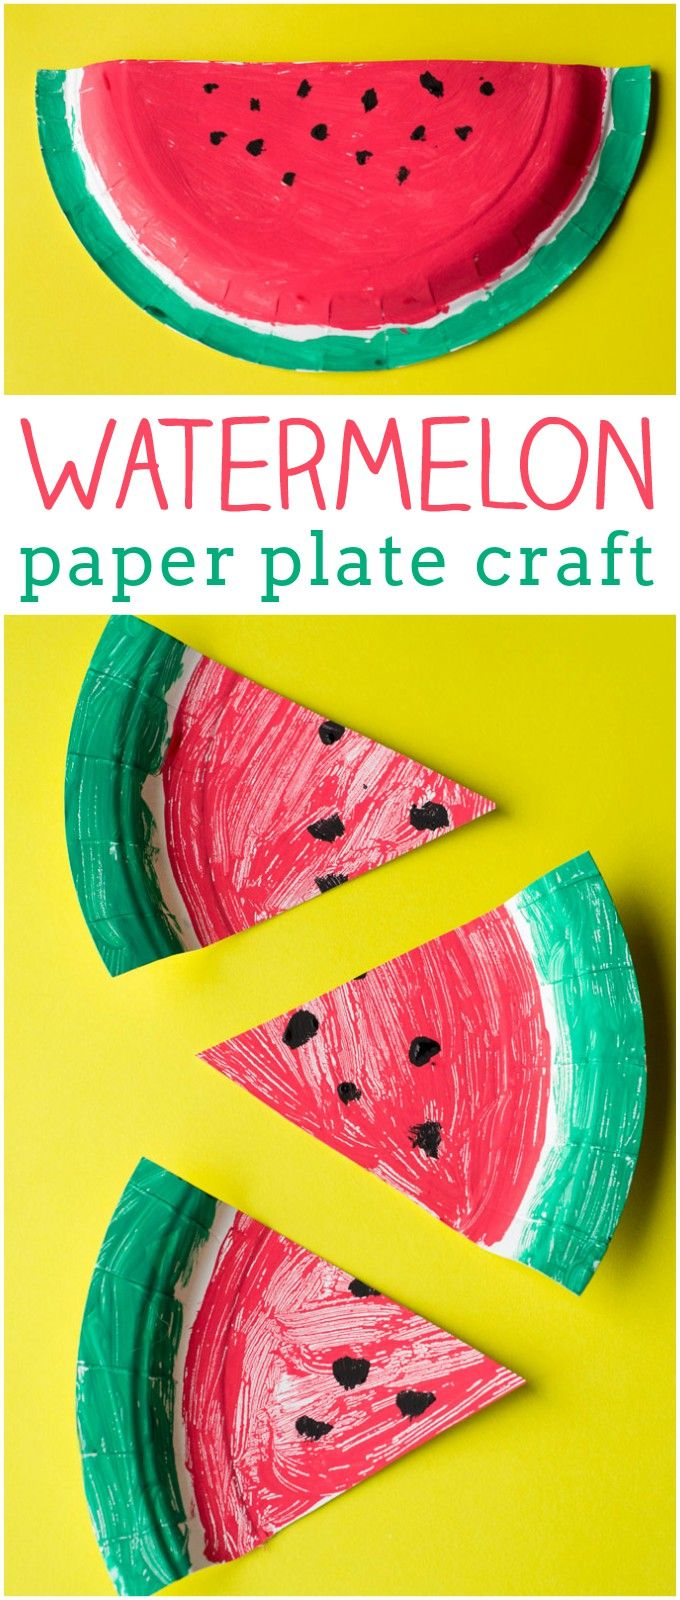 This watermelon paper plate craft is perfect for preschoolers! It makes a great summertime project : crafts from paper plates - Pezcame.Com